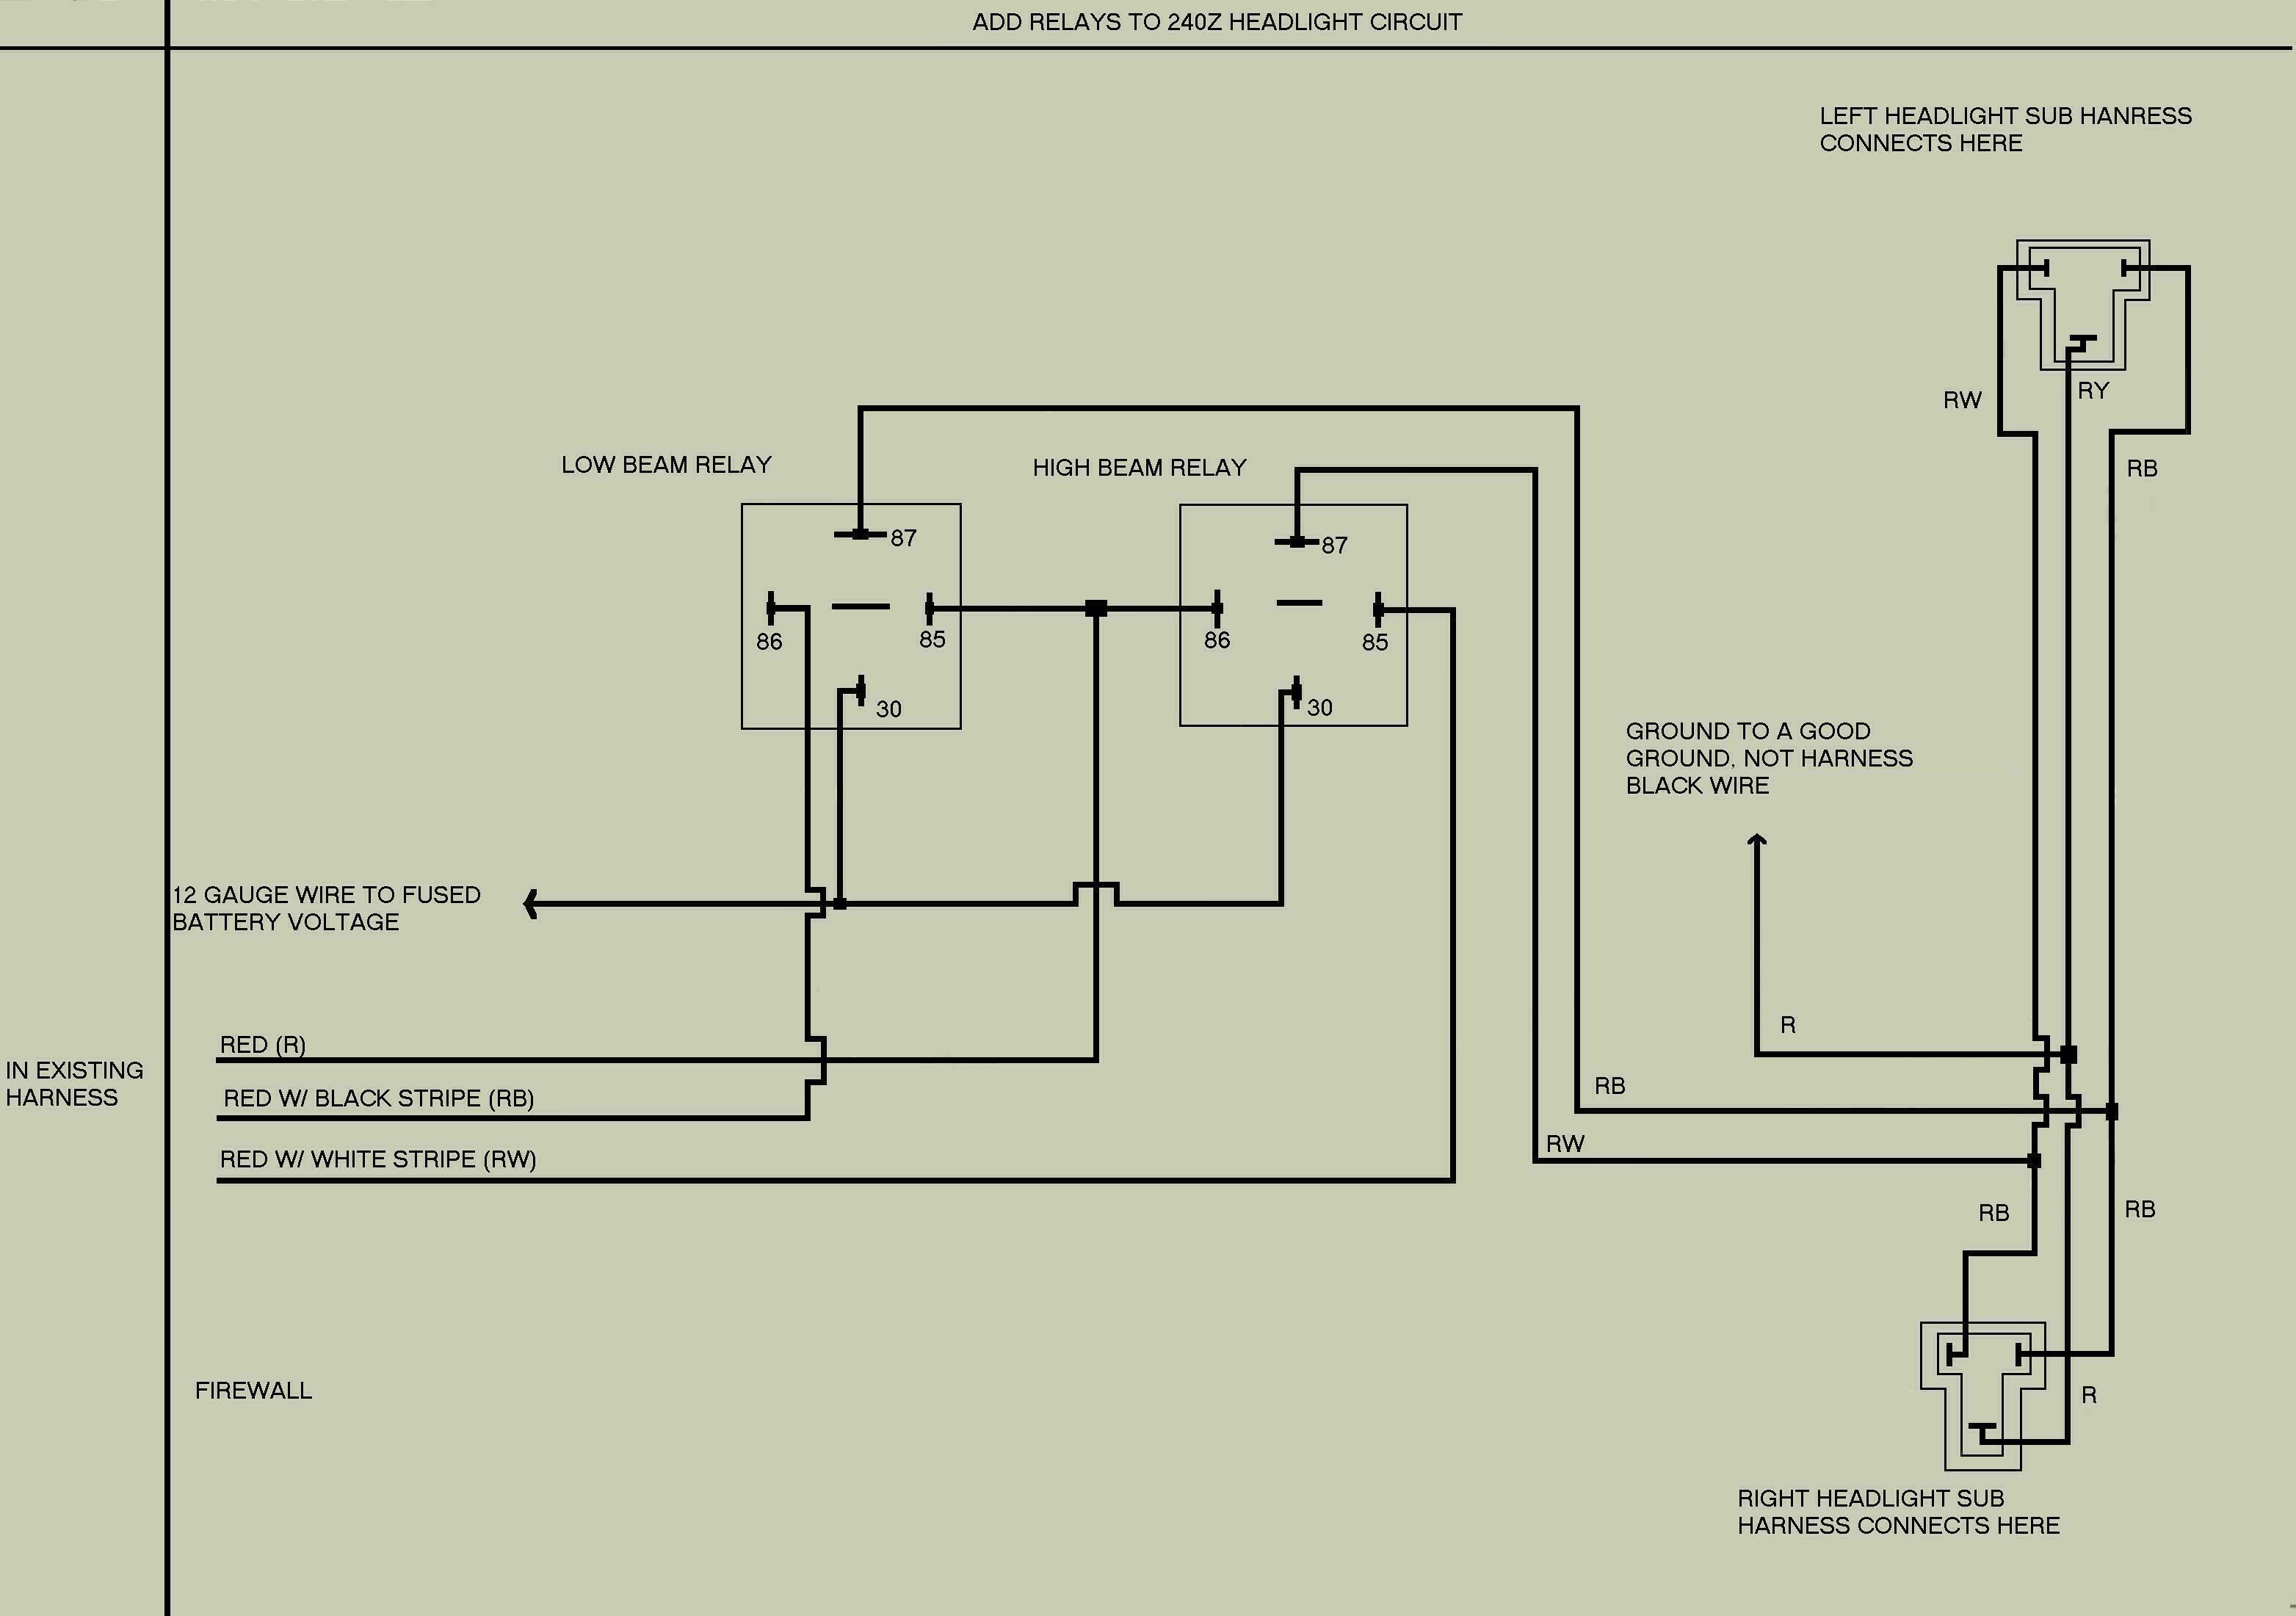 z headlight relay mod click here for a circuit diagram